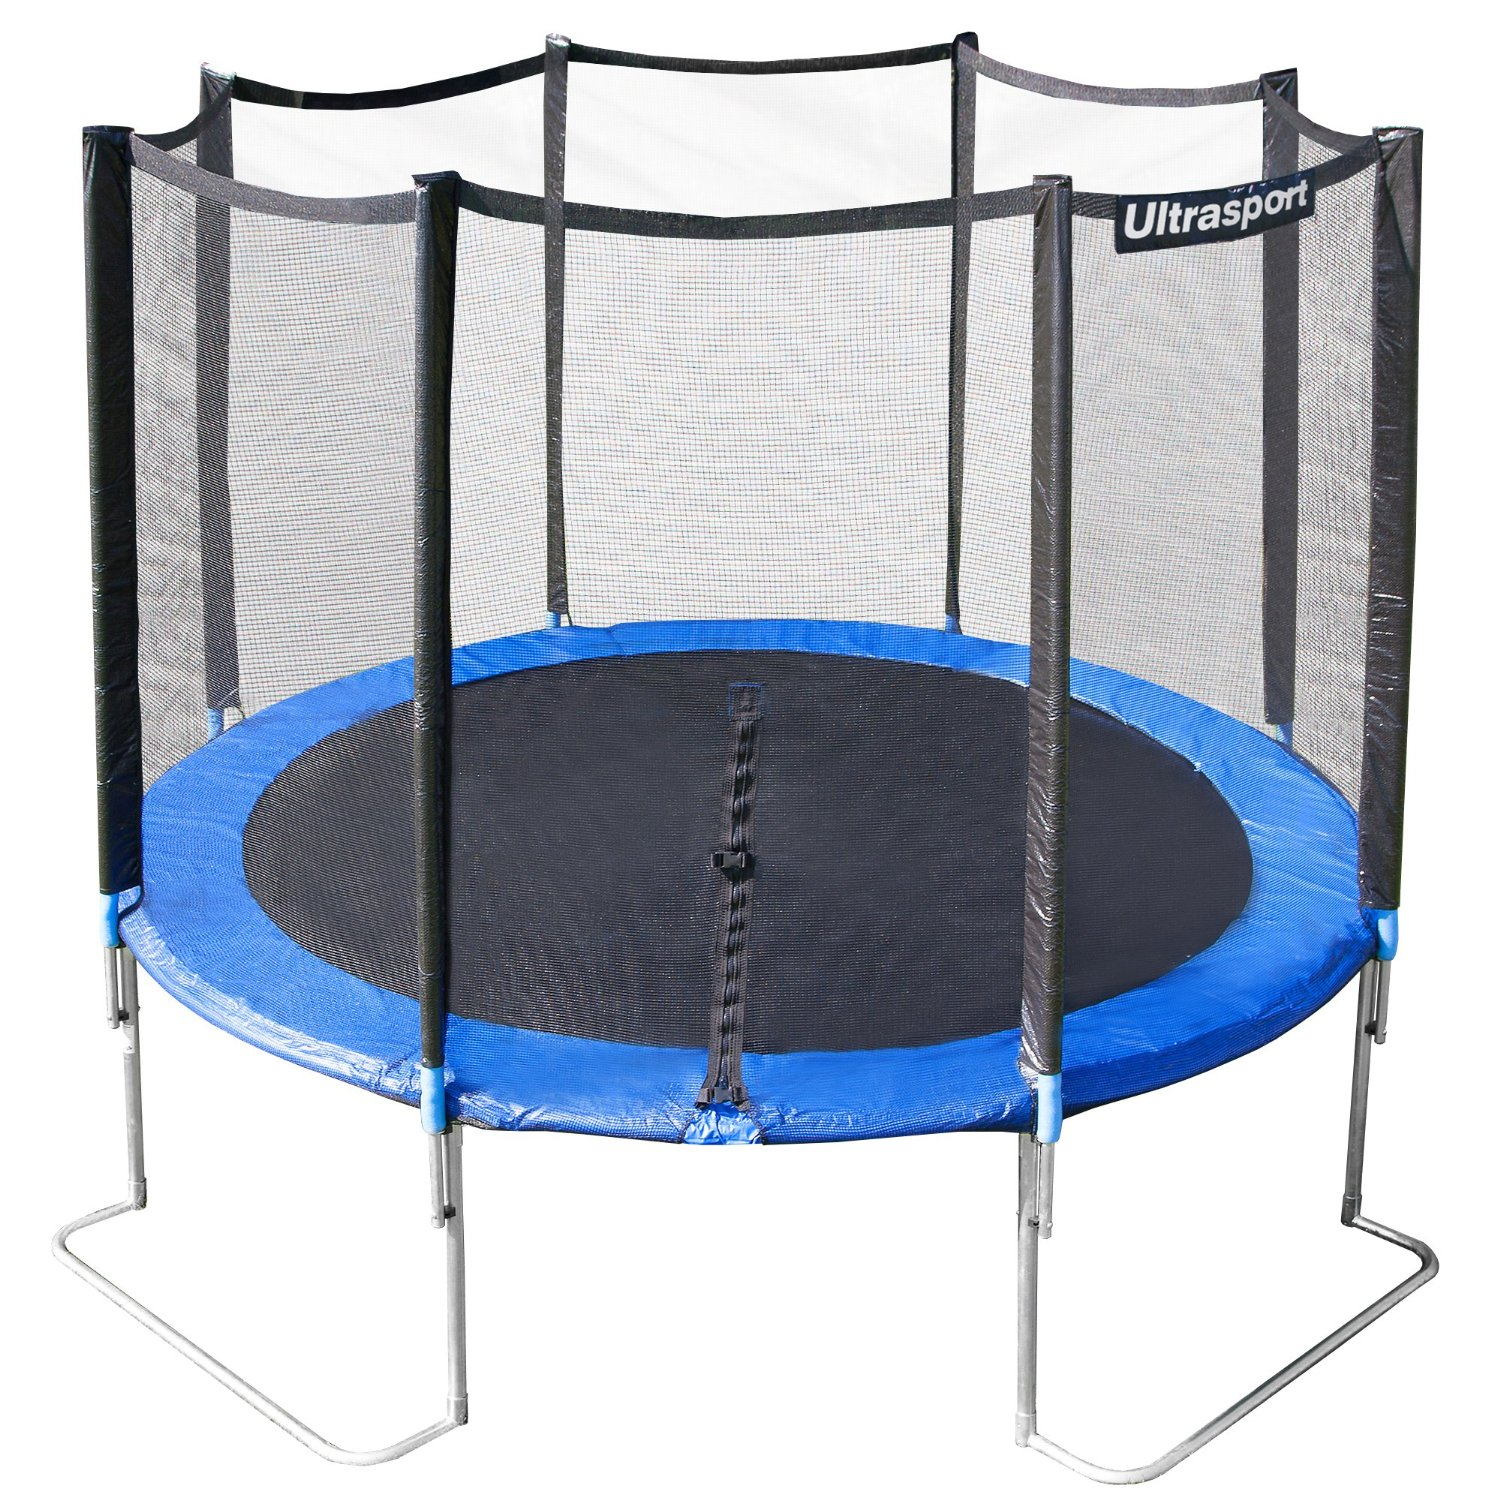 trampoline de jardin 305 cm ultrafit jumper filet de s curit 4 pieds actualit s. Black Bedroom Furniture Sets. Home Design Ideas